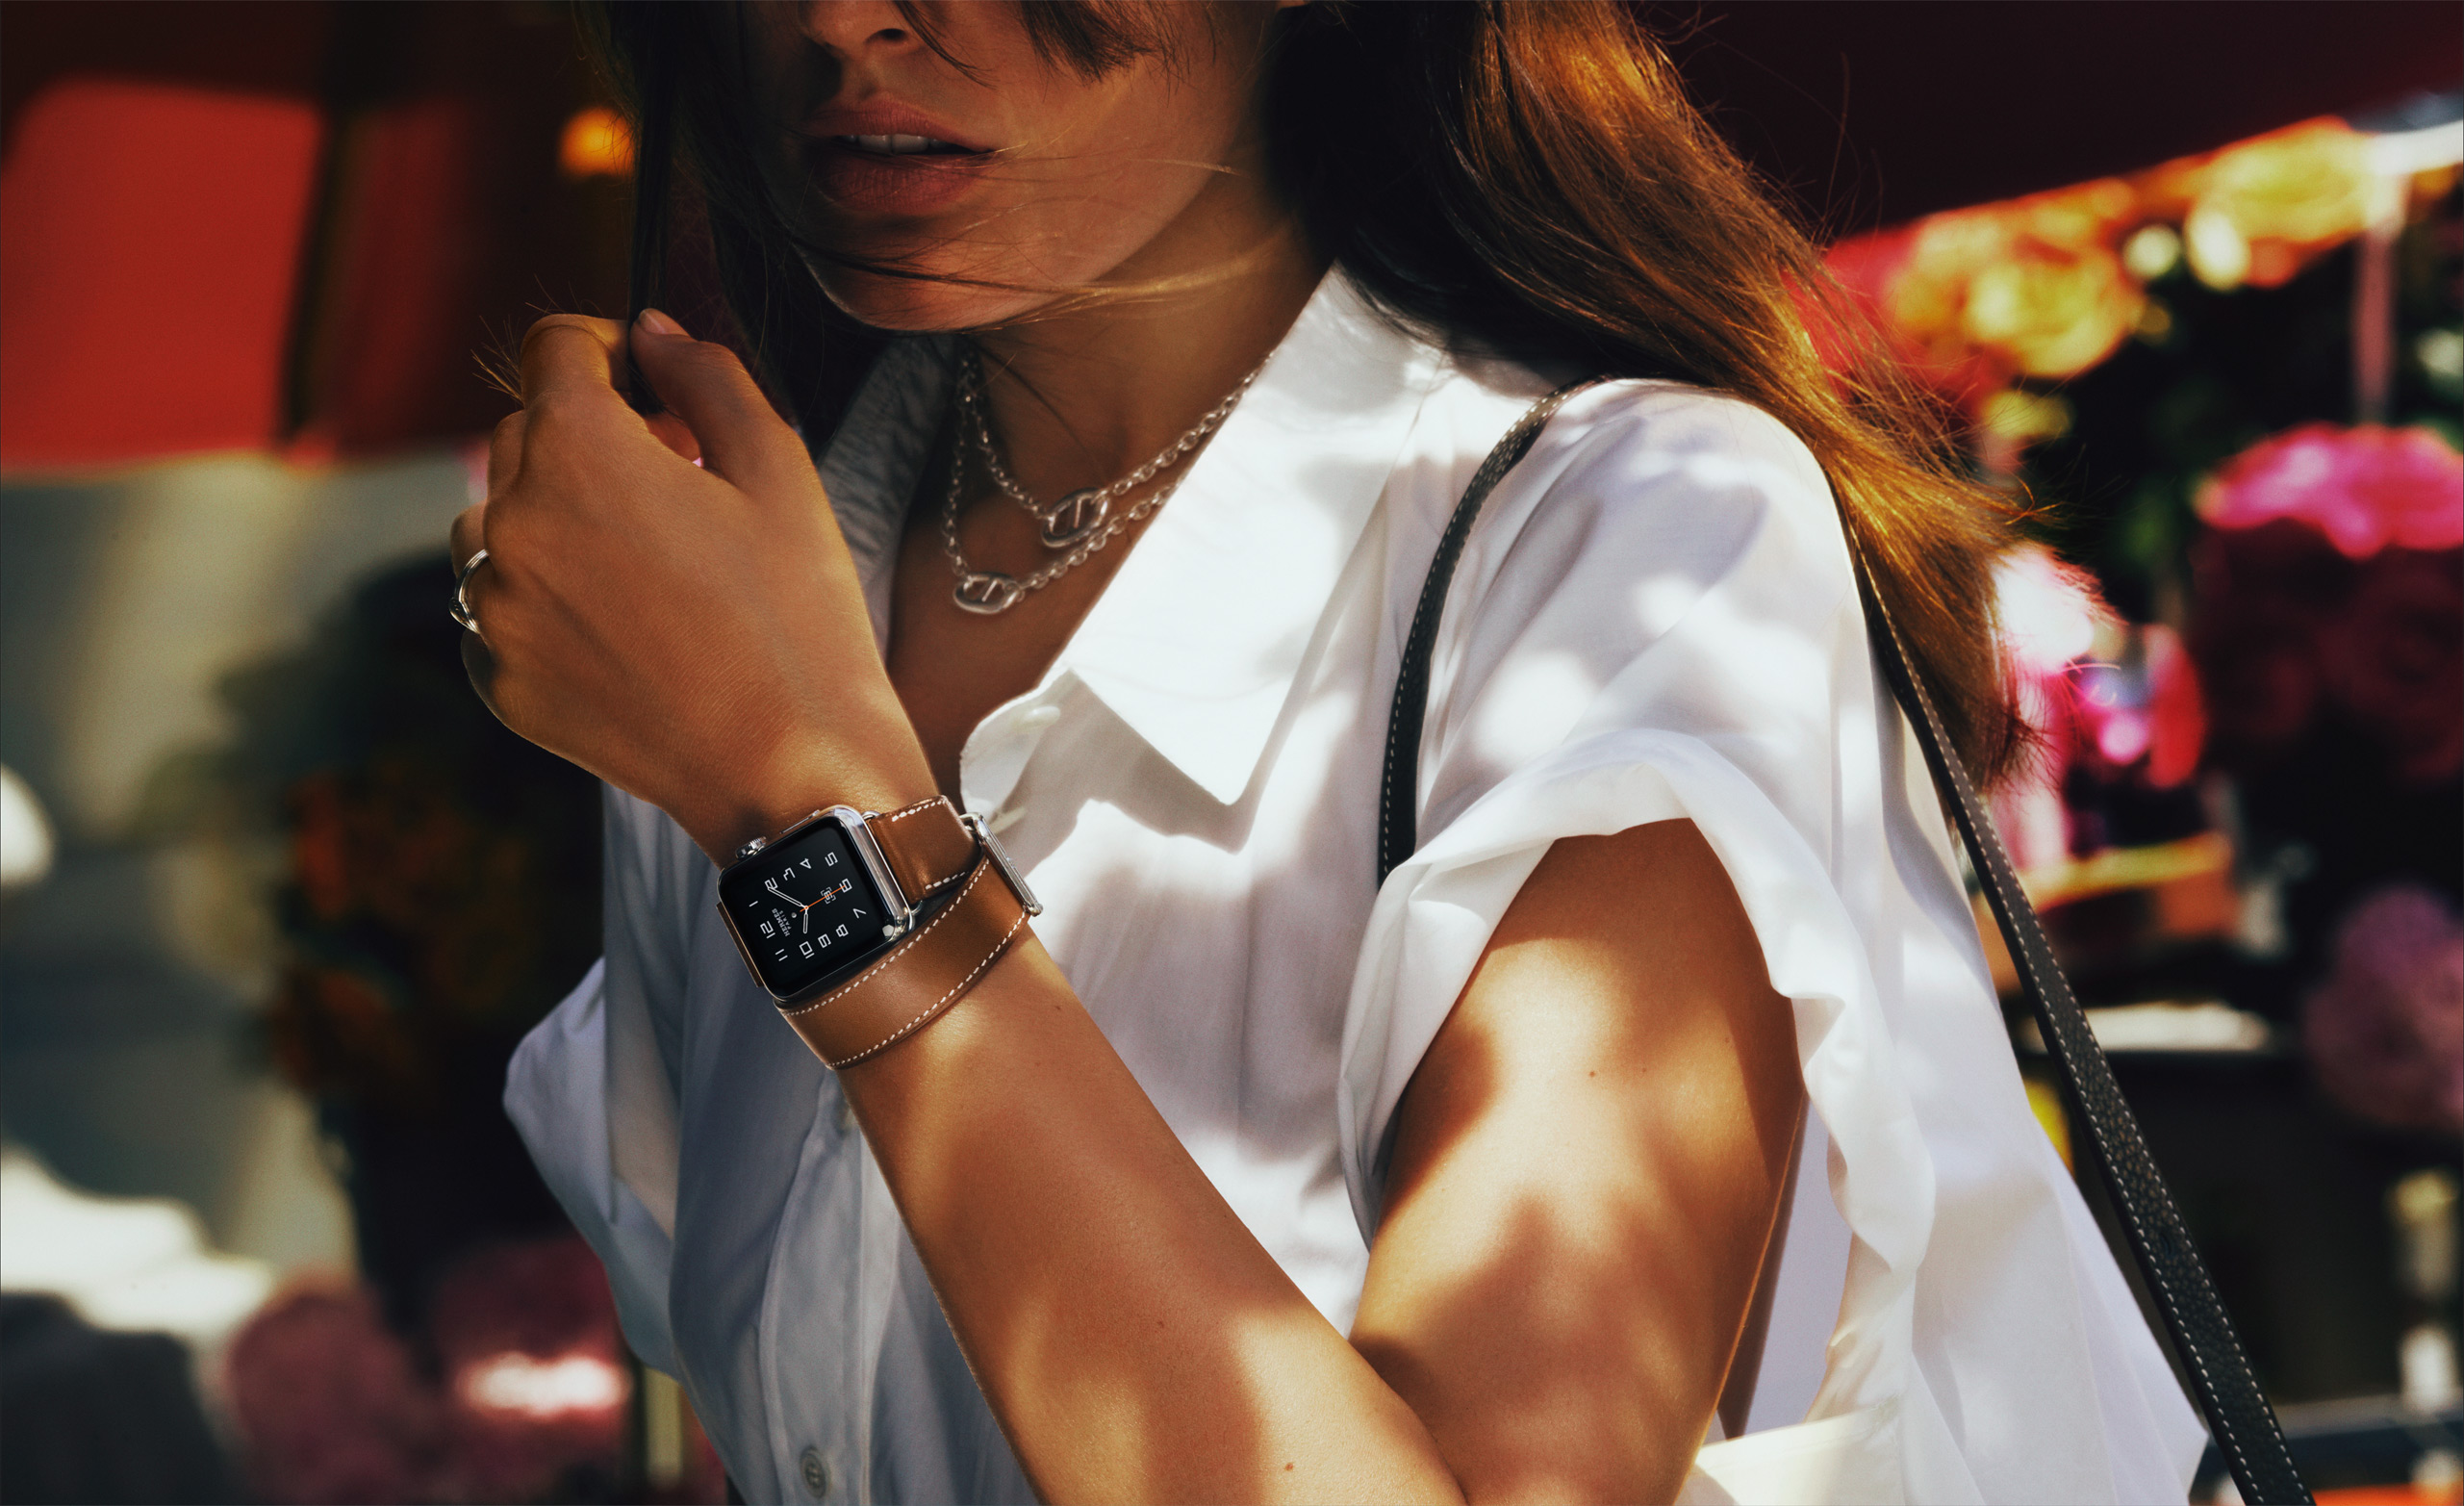 Apple Watch Hermès collection to be available online starting Jan. 22